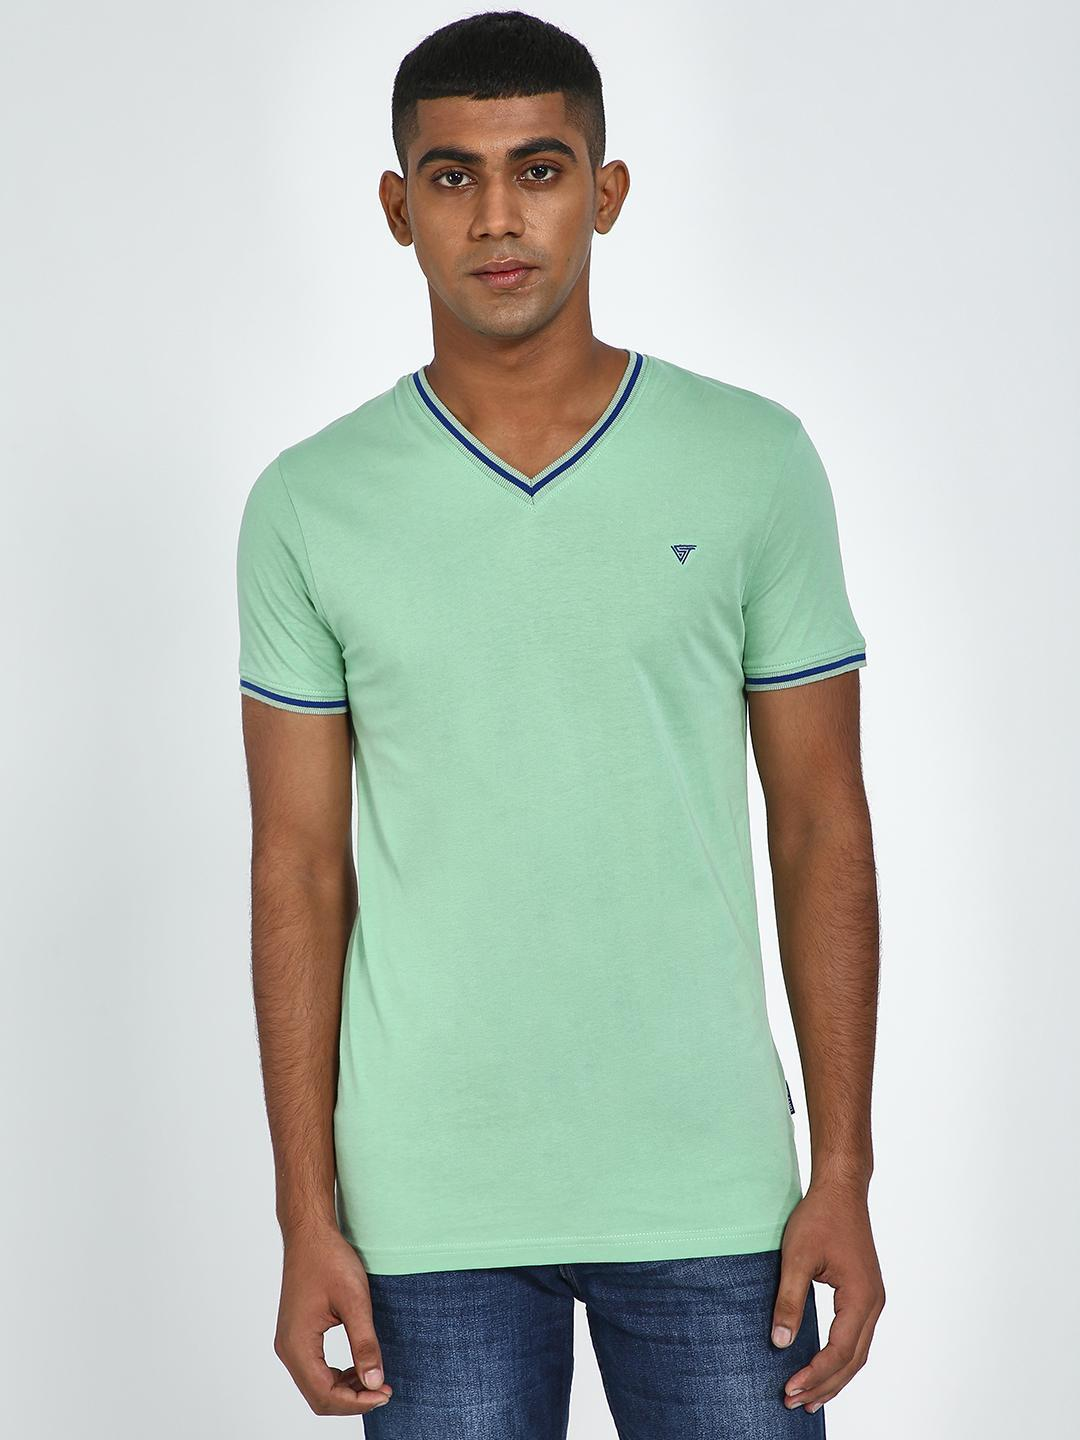 Blue Saint Hemlock V-Neck Regular Fit T-Shirt 1